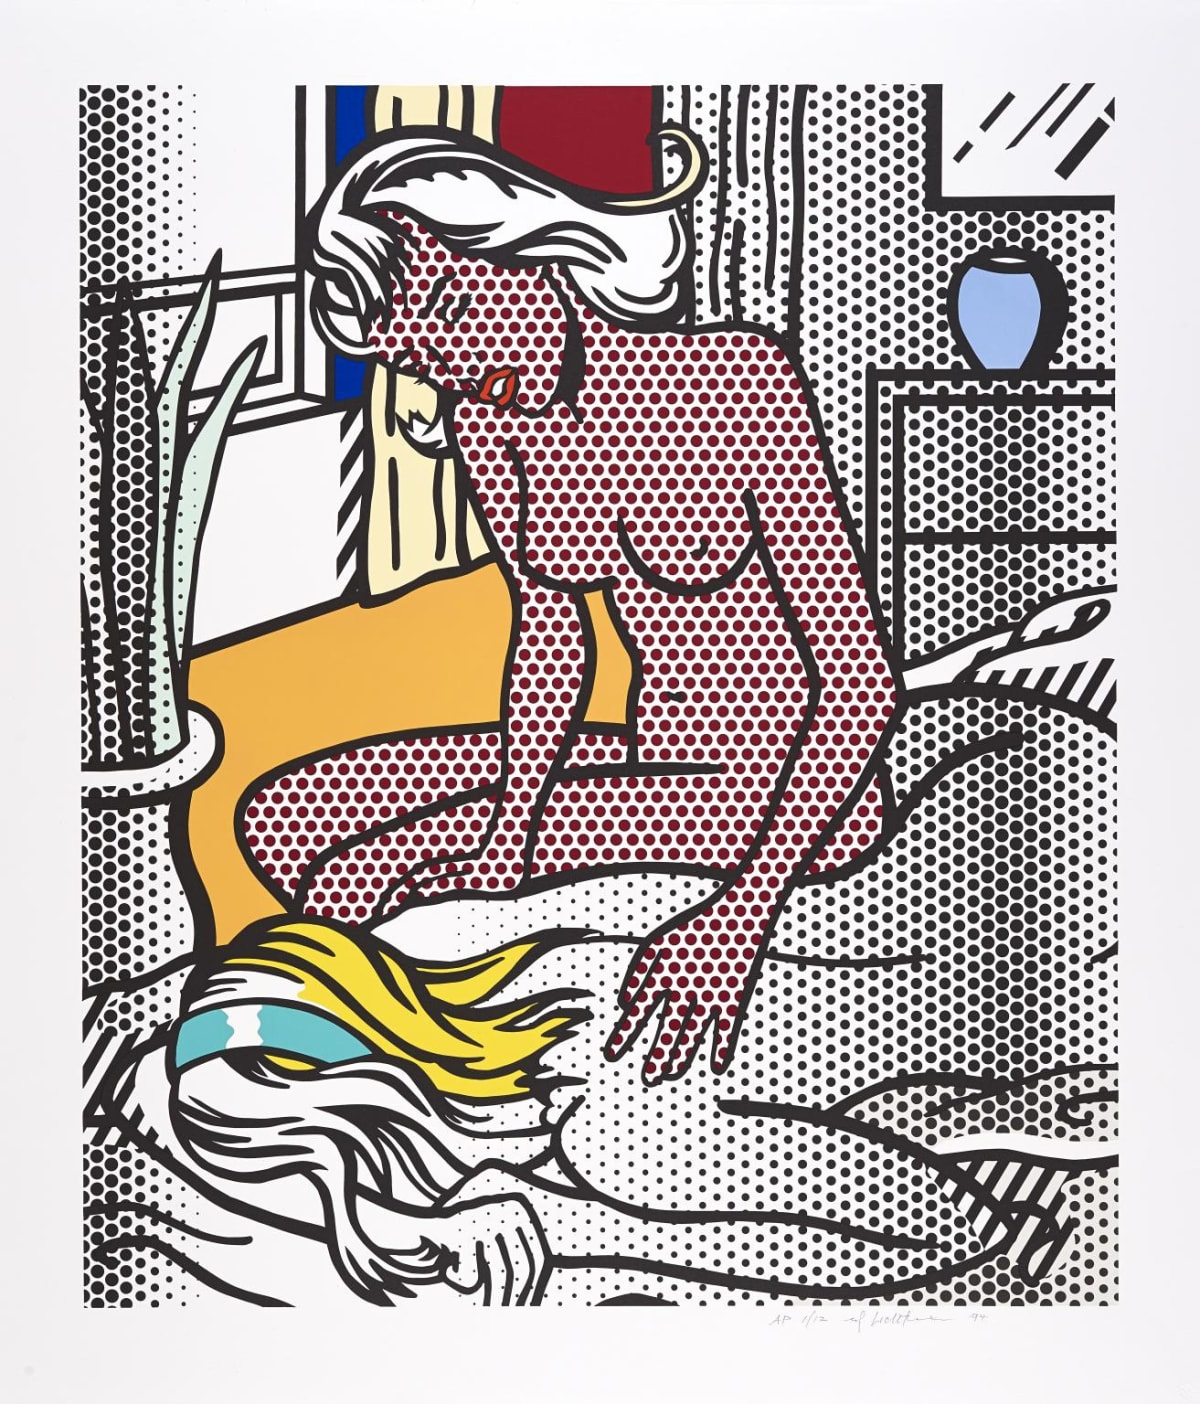 Two Nudes, 1994 by Roy Lichtenstein from edition of 40 at Coskun Fine Art